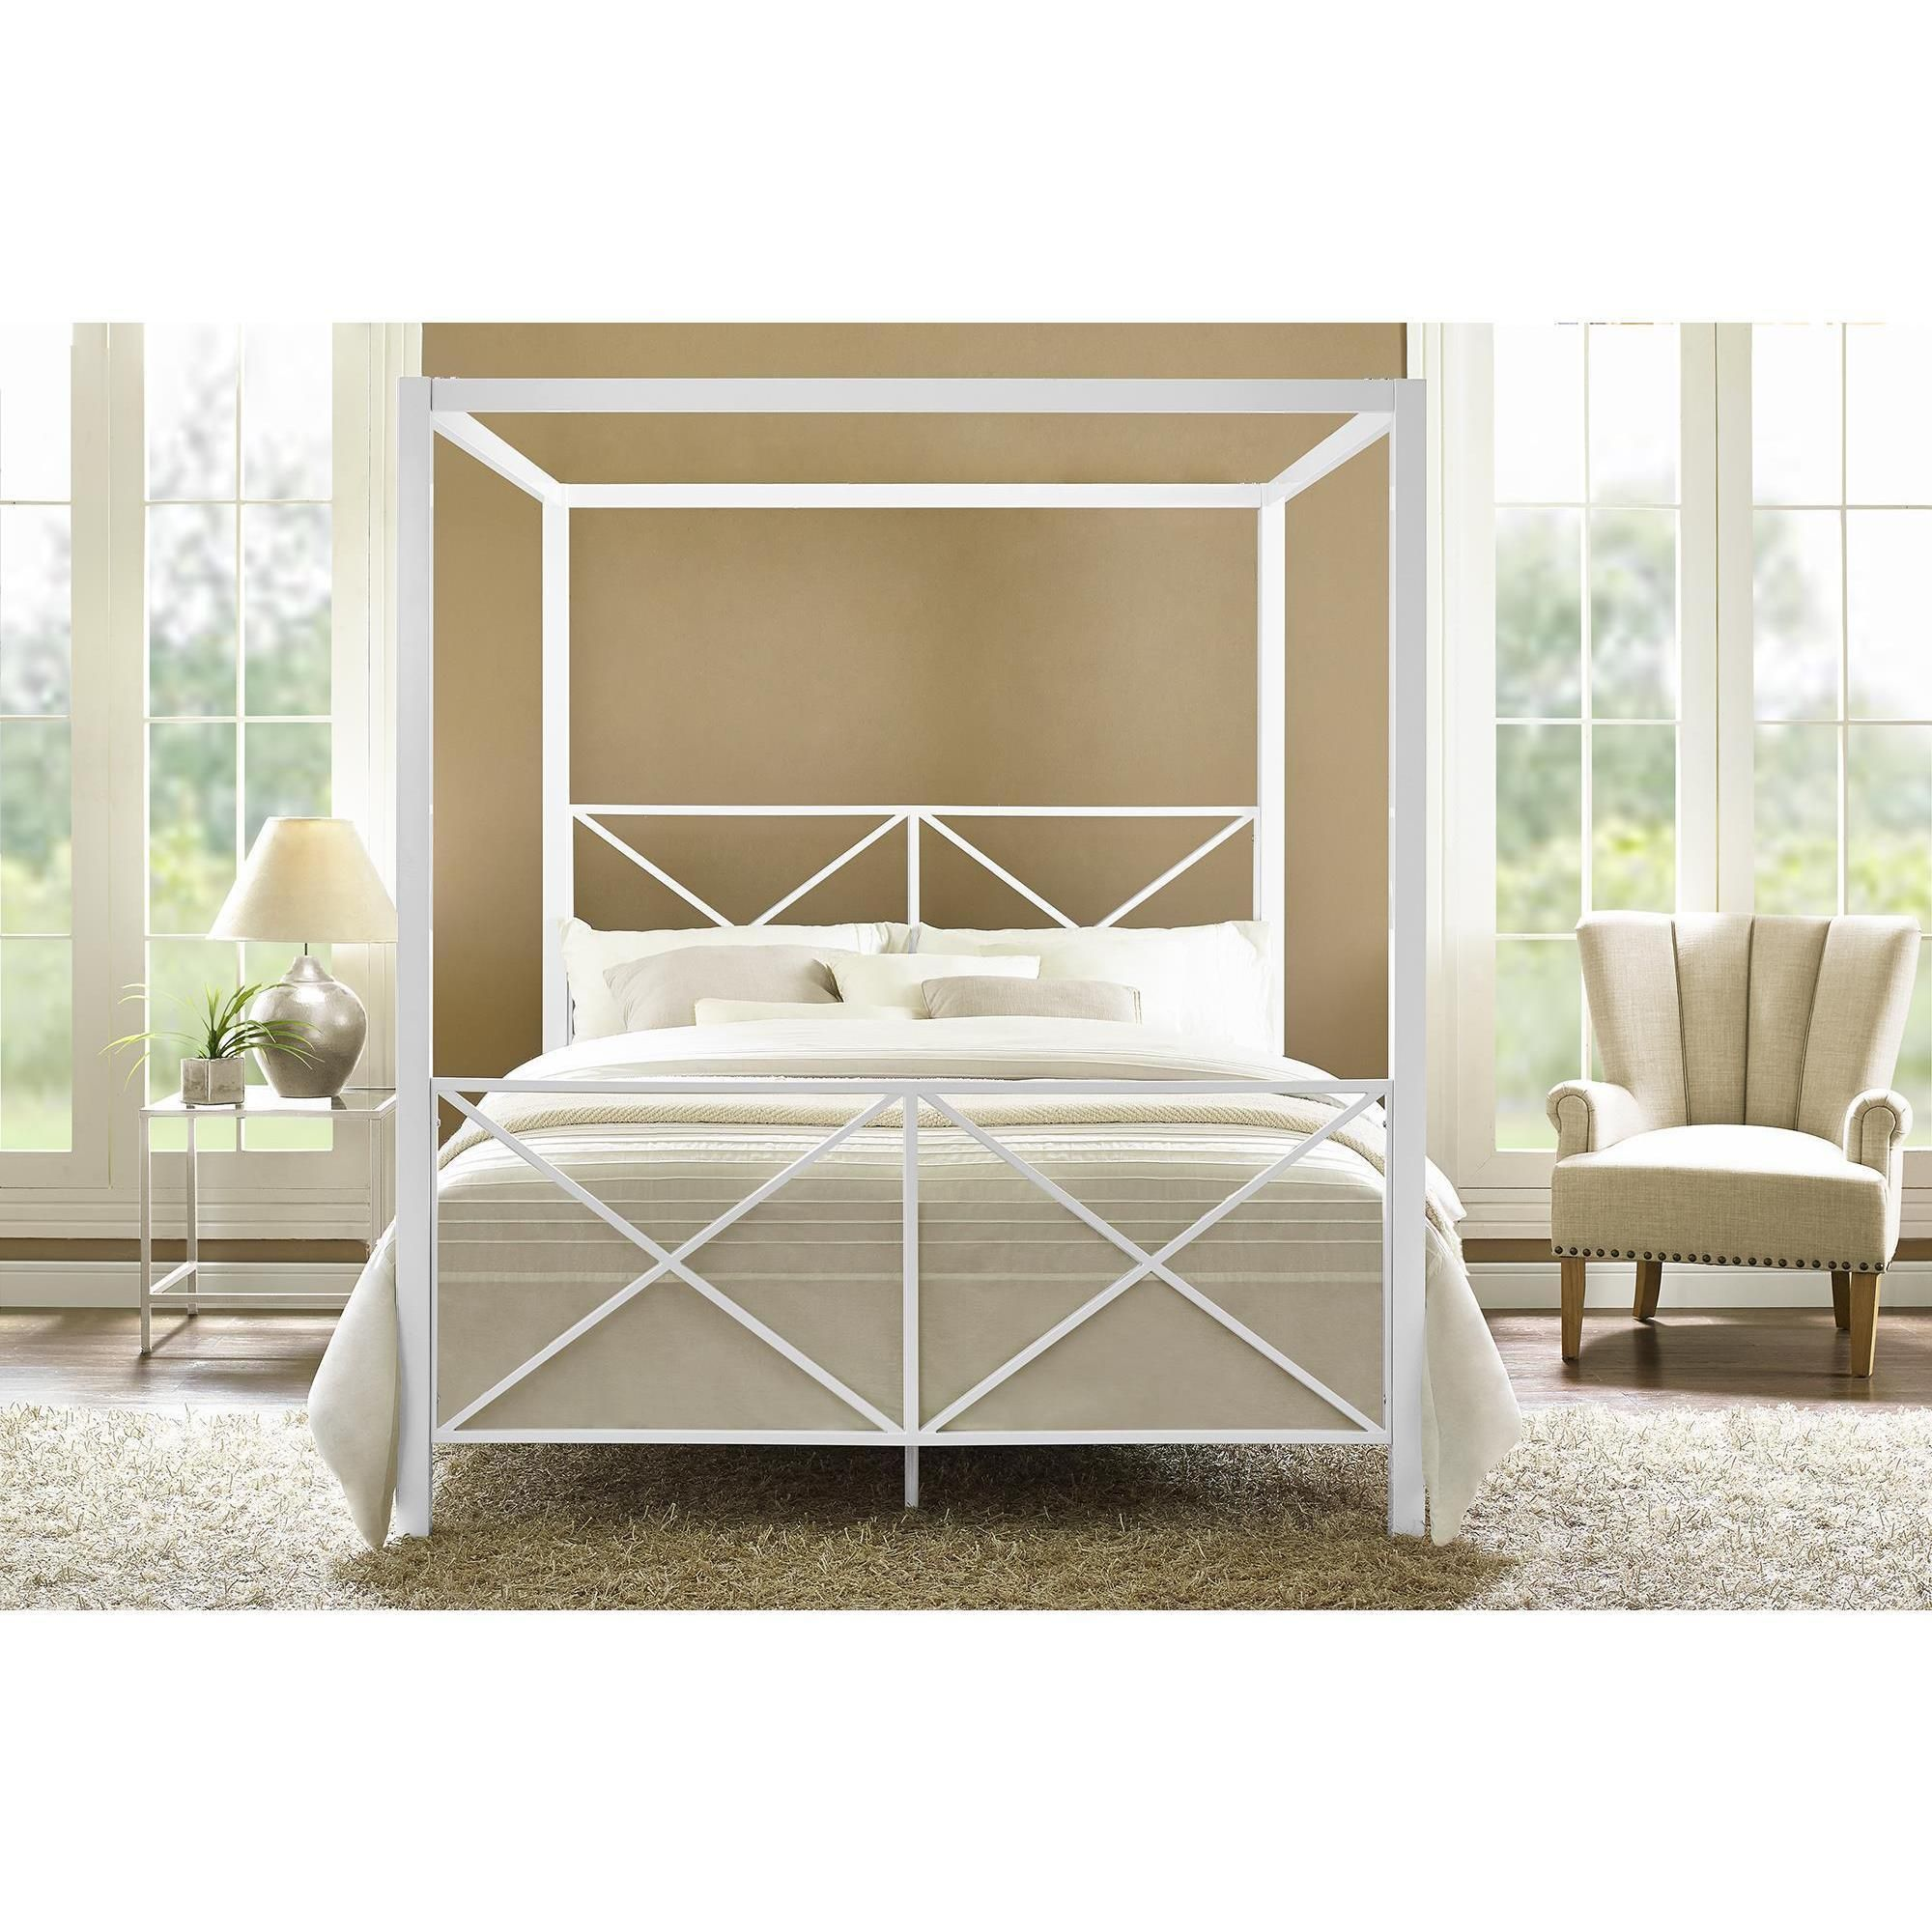 Avenue greene rosemarie white metal canopy bed queen dhp